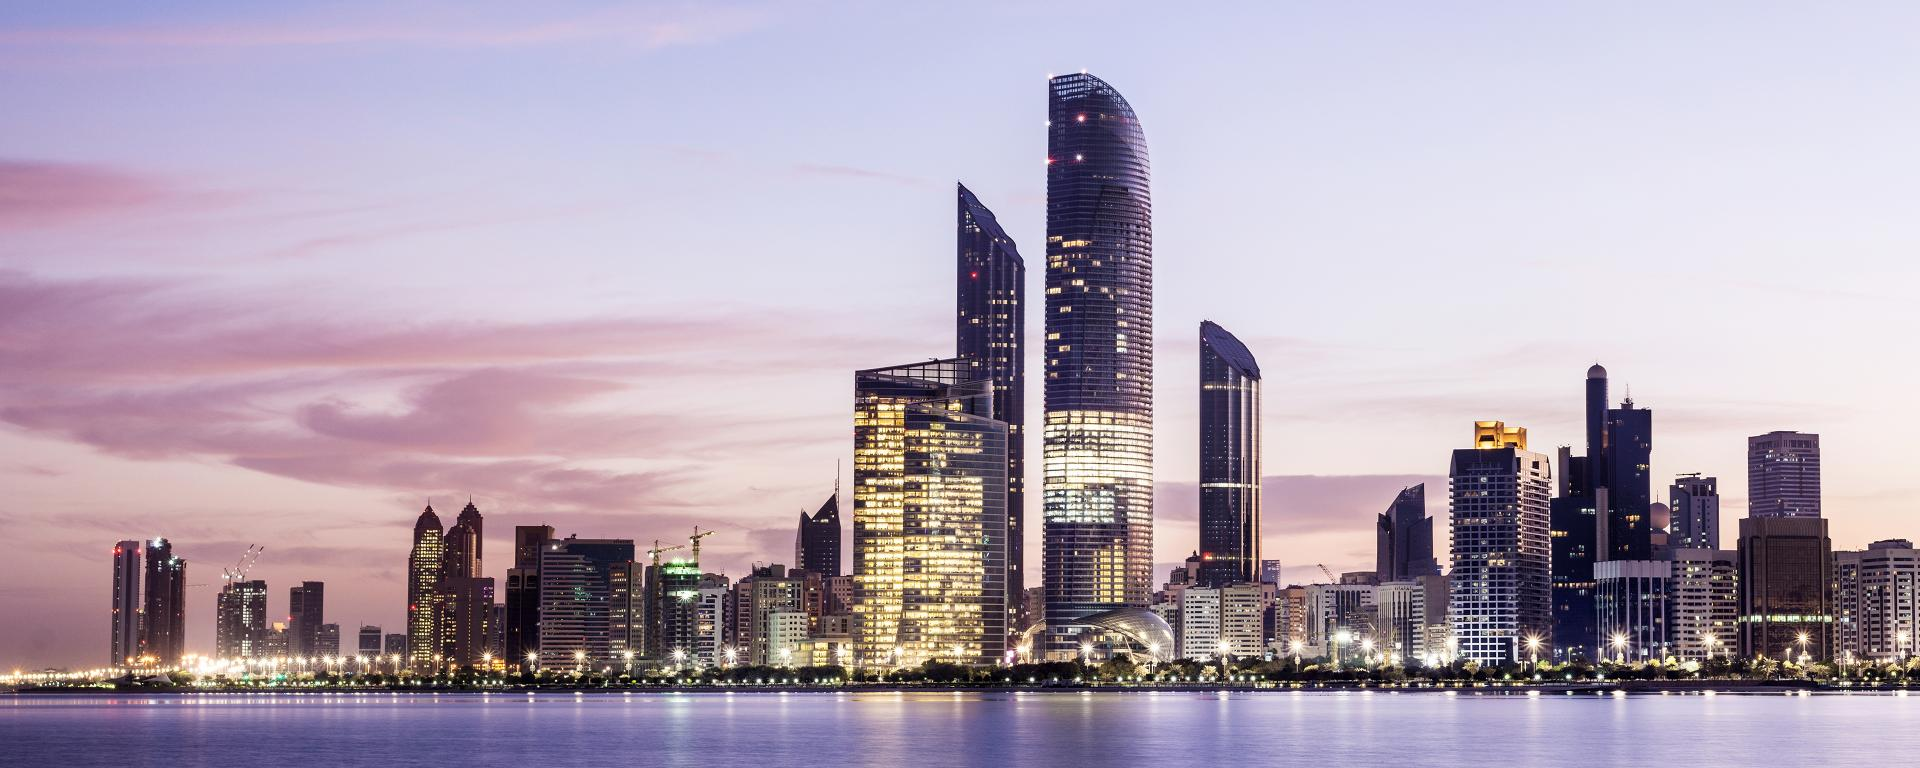 Skyline of Abudhabi